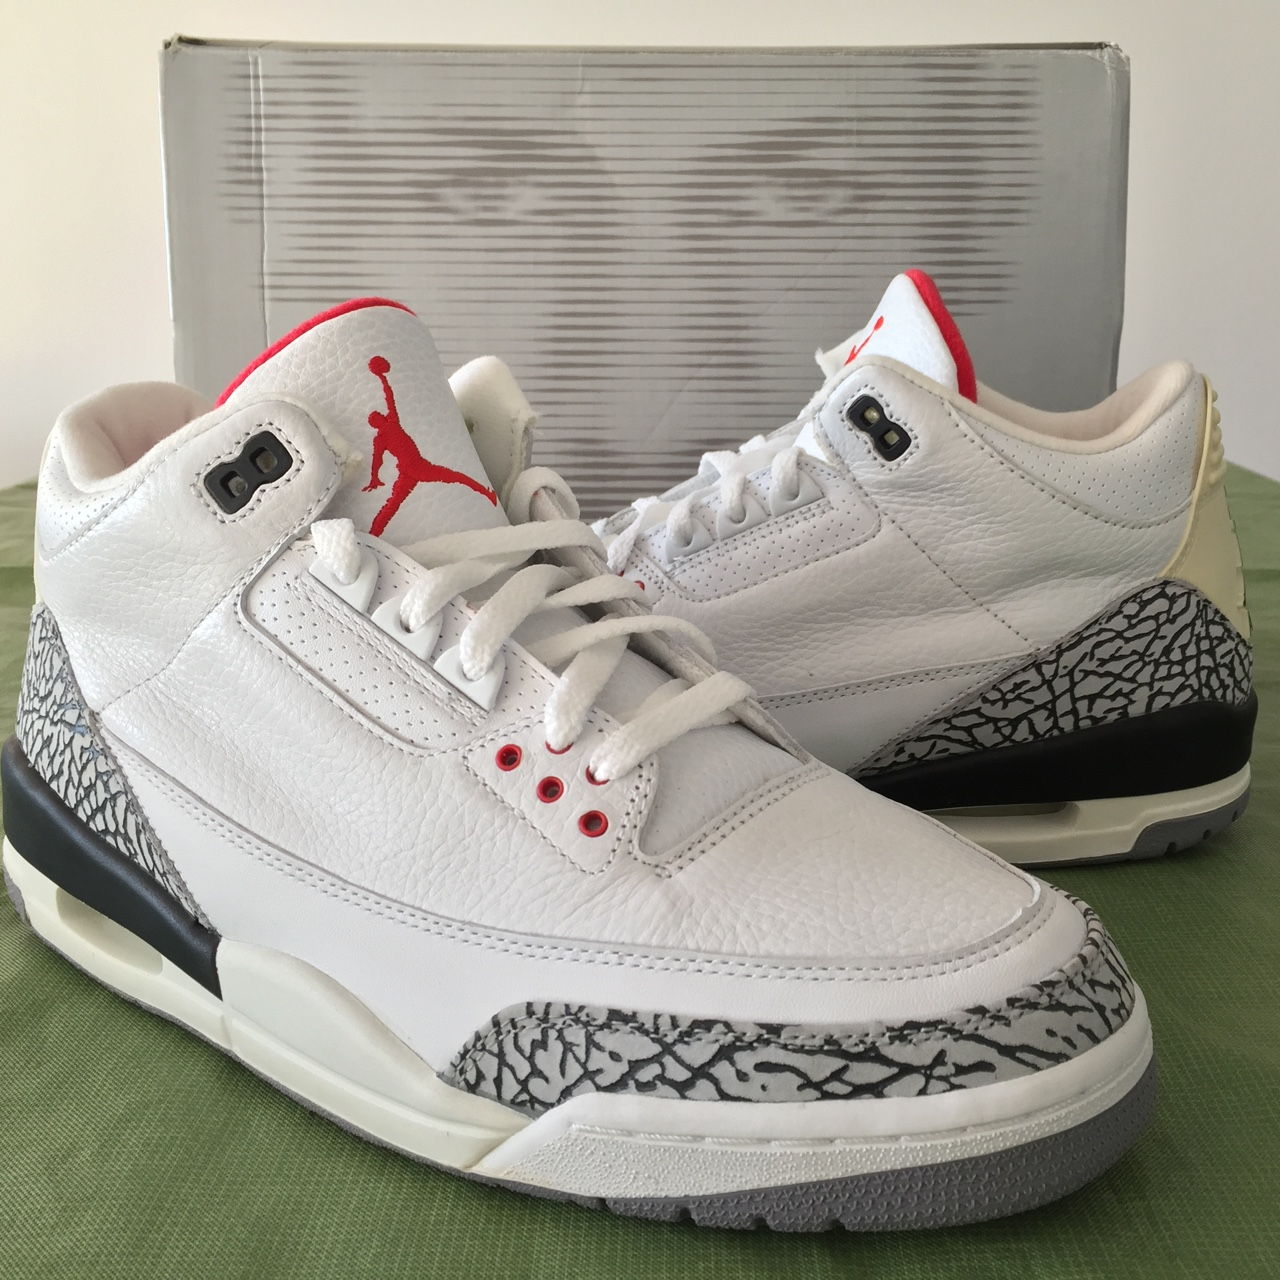 newest 3ca7c a7c03 2003 Nike Air Jordan III 3 White Cement Fire Red - 10.5 - Depop